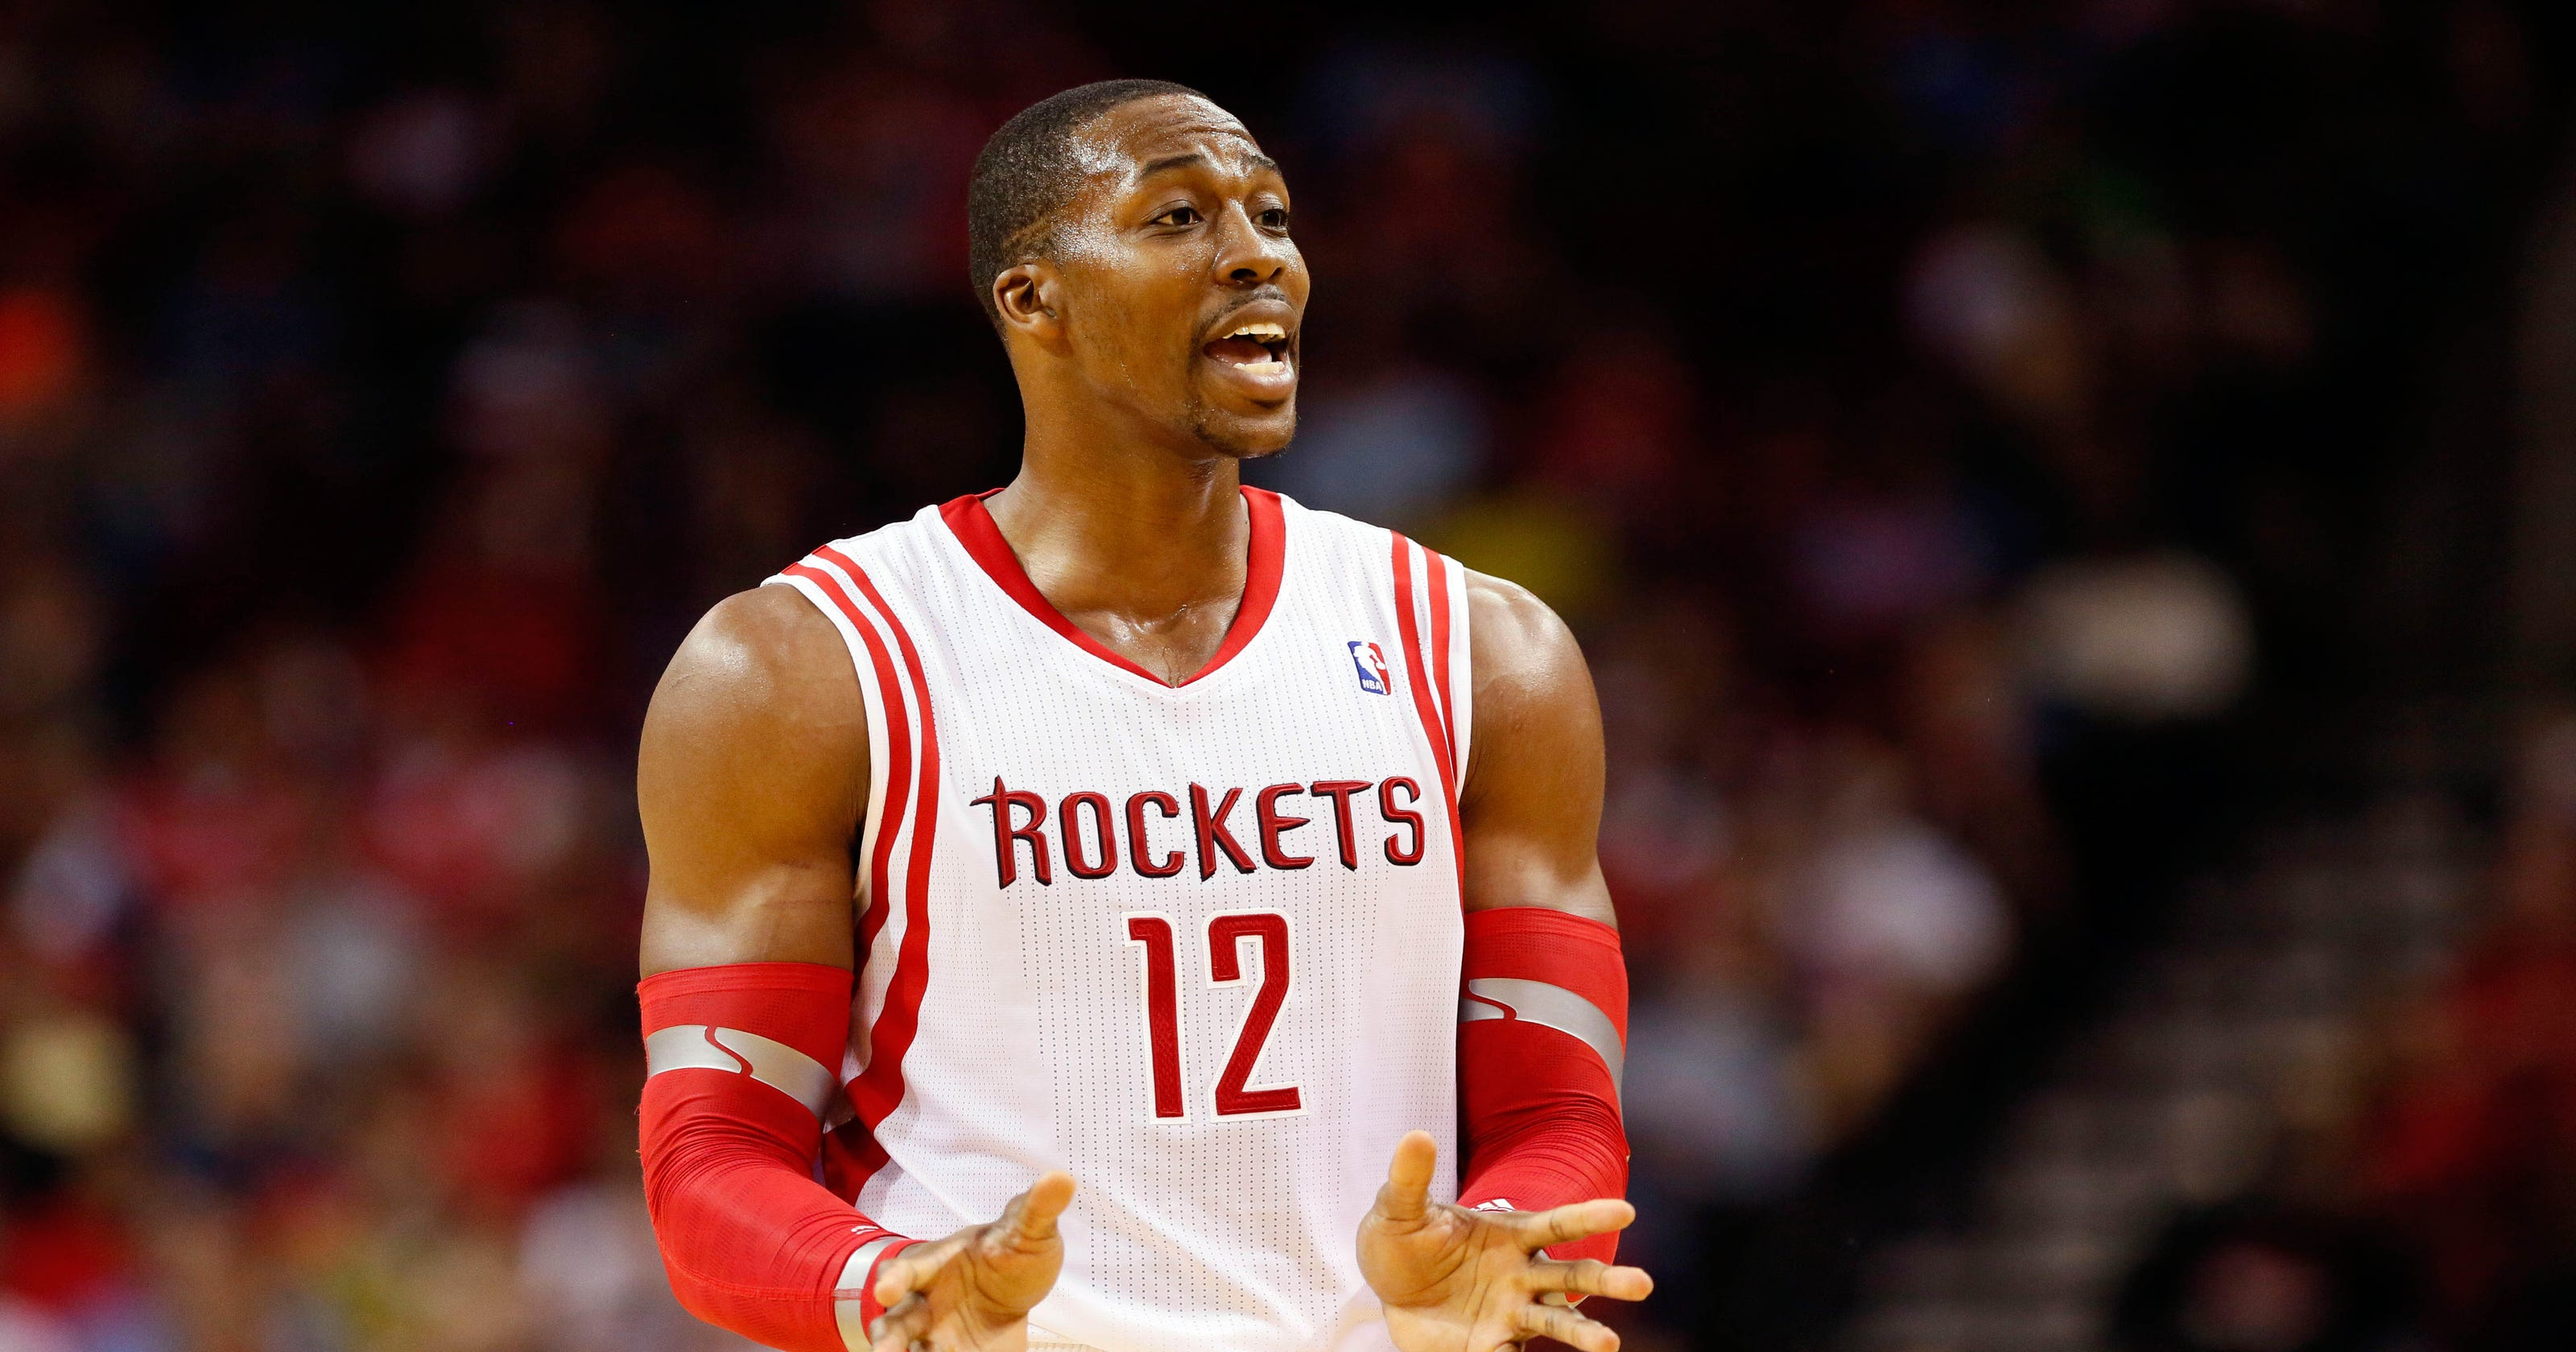 bf5fb6762b85 Hacking Dwight Howard costs Nuggets against Rockets